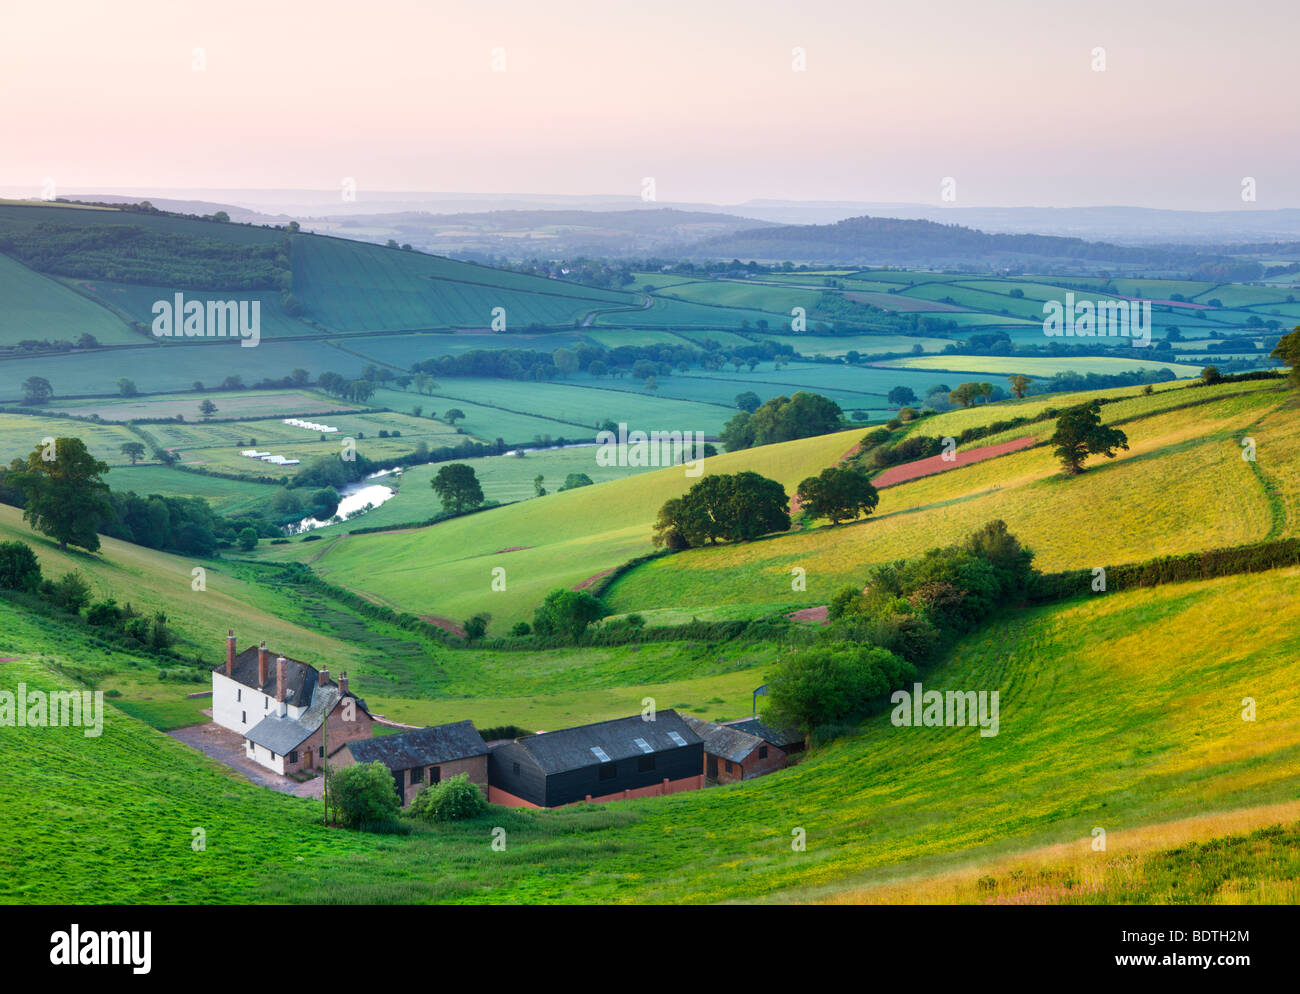 Farm nestled in the Exe valley overlooking the River Exe, Devon, England. Summer (June) 2009 Stock Photo